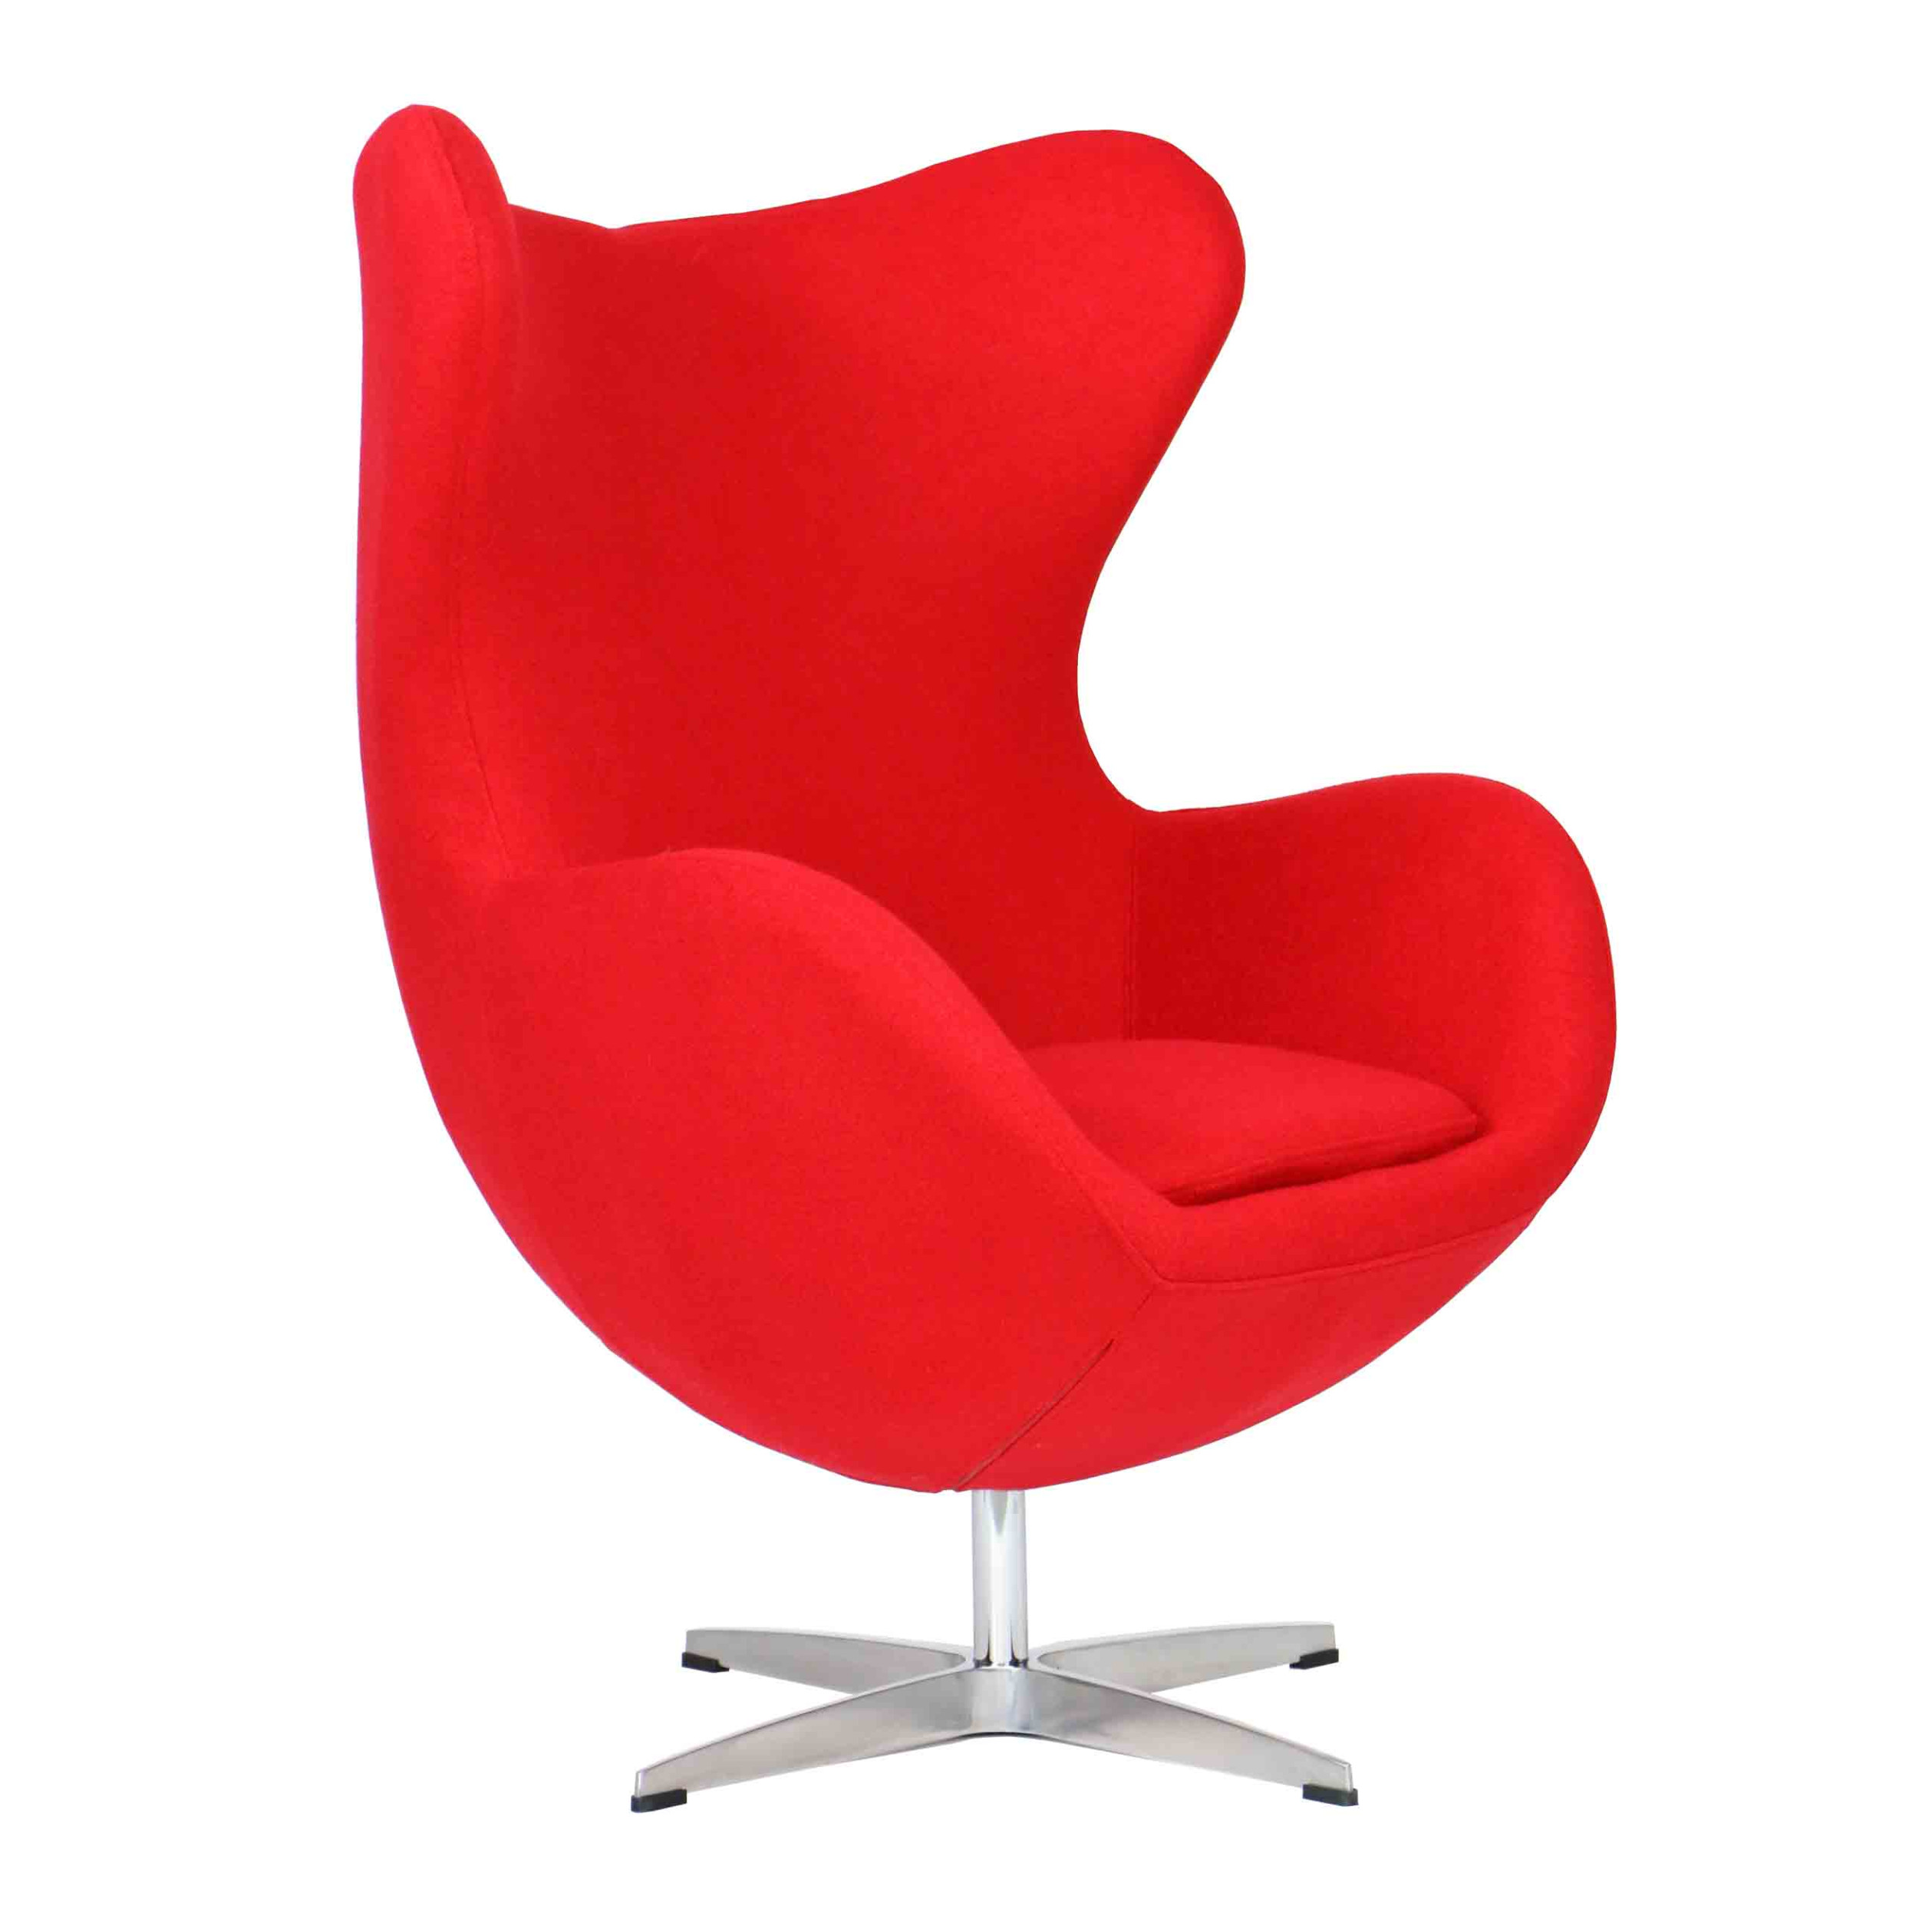 designer replica egg chair in red furniture home d cor. Black Bedroom Furniture Sets. Home Design Ideas